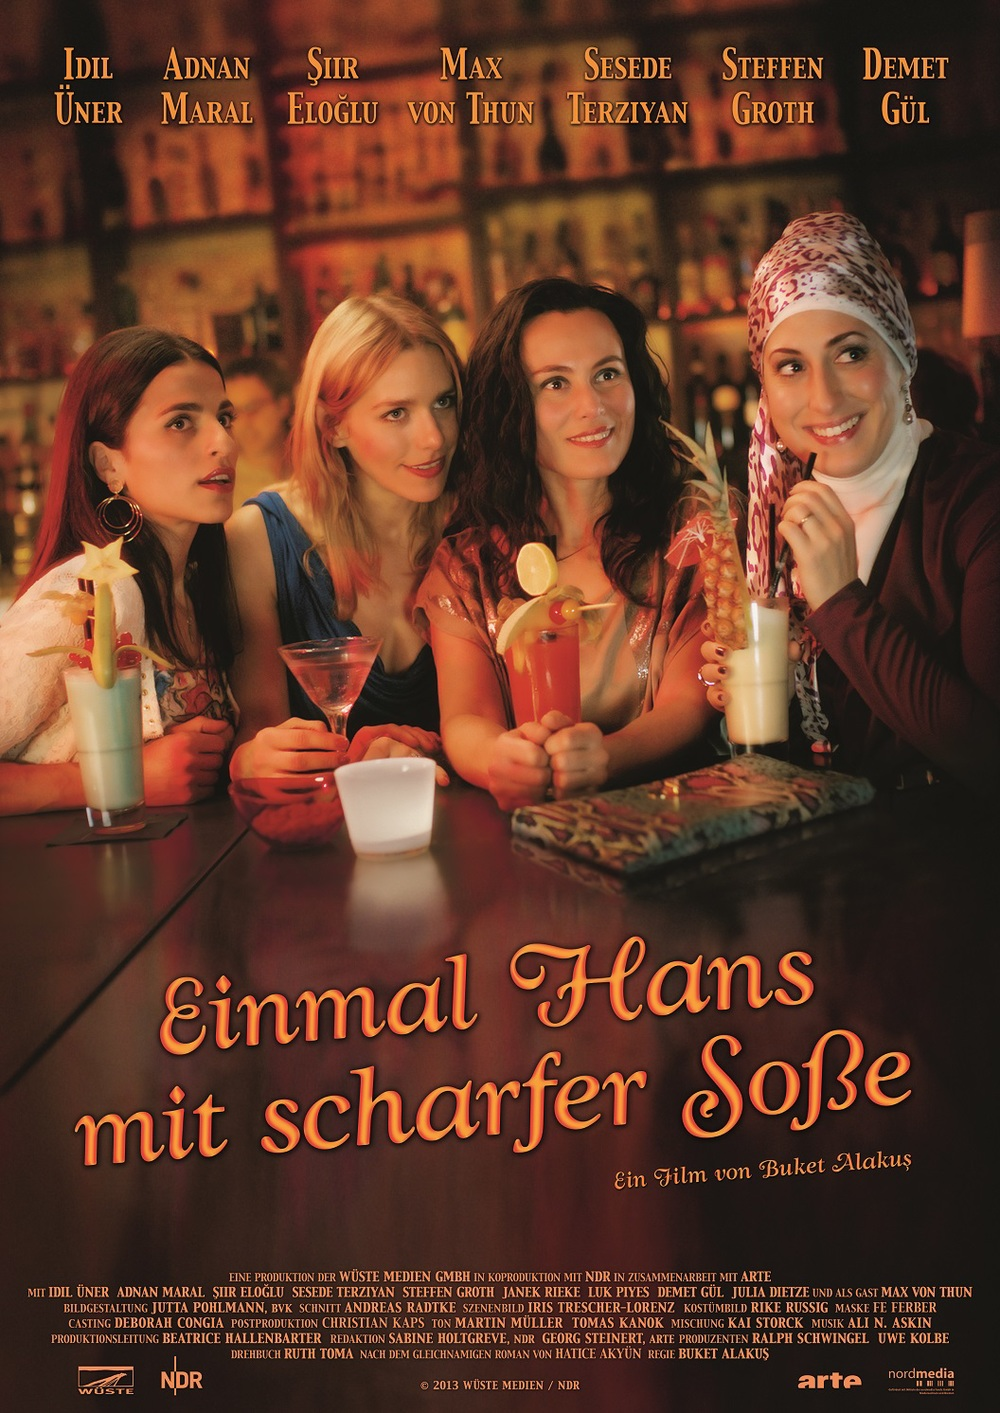 """Tomas appears in Buket Alakus' Turkish-German romantic comedy EINMAL HANS MIT SCHARFE SOSSE due to hit the cinemas JUNE 12th 2014.   View the trailer  here.    Excerpt from ArtistNetwork online magazine. http://artistnetwork.de/einmal-hans-mit-scharfer-sose-autorin-hatice-akyun-uber-julia-dietze/  Hatice Akyün:""""The adaption of my book (""""Einmal Hans mit scharfer Soße"""") for the movie is a dream come true. The script is amazing and the actors are more than I could have dreamed of. The story is modern, romantic and very funny. The director Buket Alakus put a lot of commitment into the movie. She is an awesome director whose Turkish soul and German craft made the movie a very special piece. I met Julia Dietze for the first time at the premiere of """"Einmal Hans mit scharfer Soße"""". I swear – as the Turkish would say – I thought I would meet my longtime friend Julia. Julia has beautiful blonde hair and sparkling blue eyes. But most of all she has (just like the """"real"""" Julia) a Turkish soul. Her acting skills in """"Einmal Hans mit scharfer Soße"""" are refreshing and authentic. She has to take part in the sequel as well.""""  P.S. The sequel was just published: """"I kiss you, Kismet"""" – for everyone, who wants even more German-Turkish stories. This is our book recommendation of the month."""